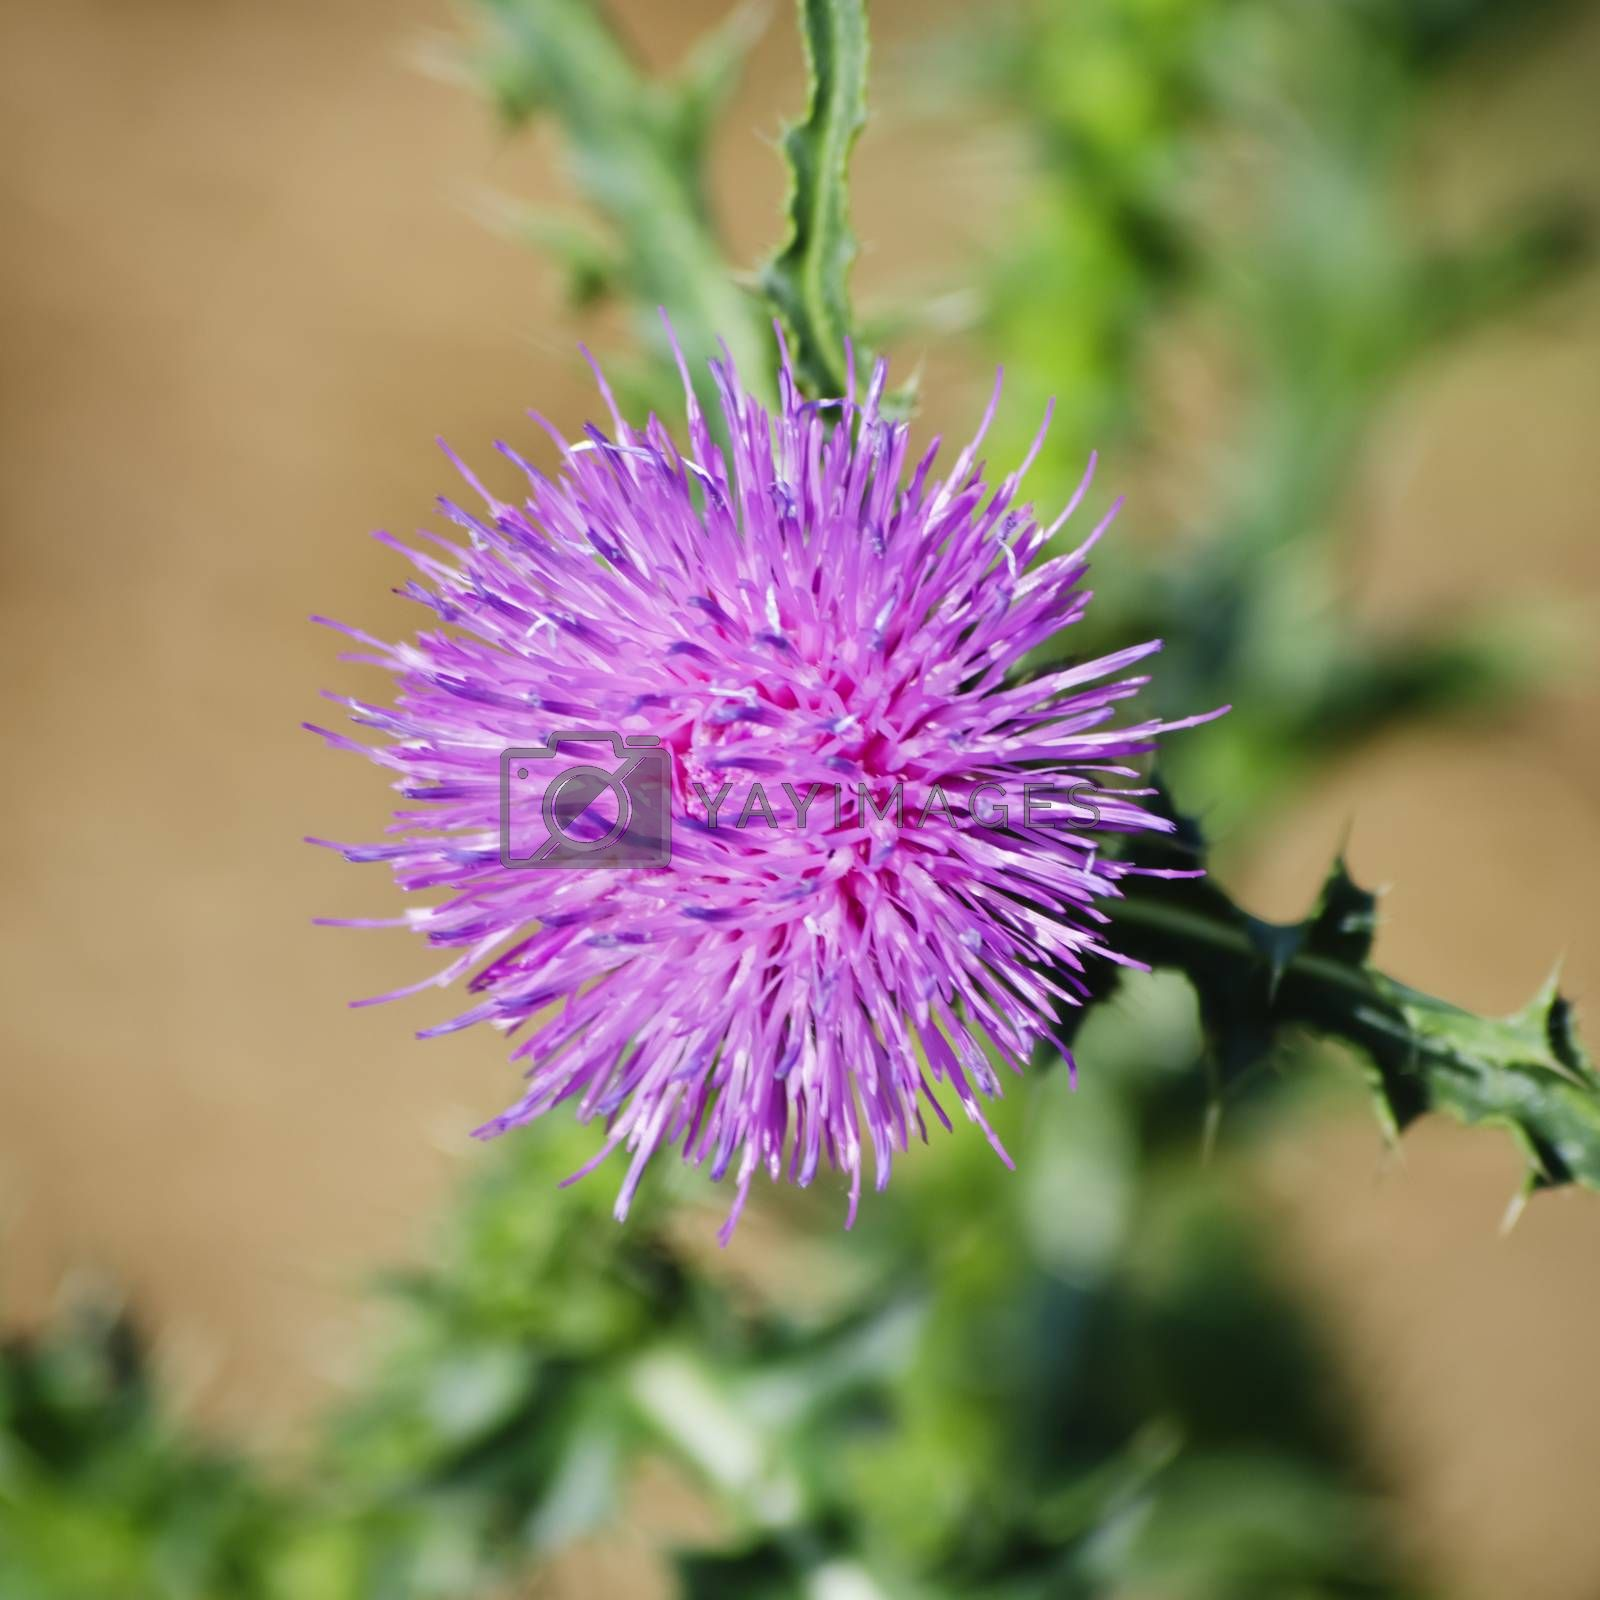 Photo of the Thistle Flower Over Natural Background